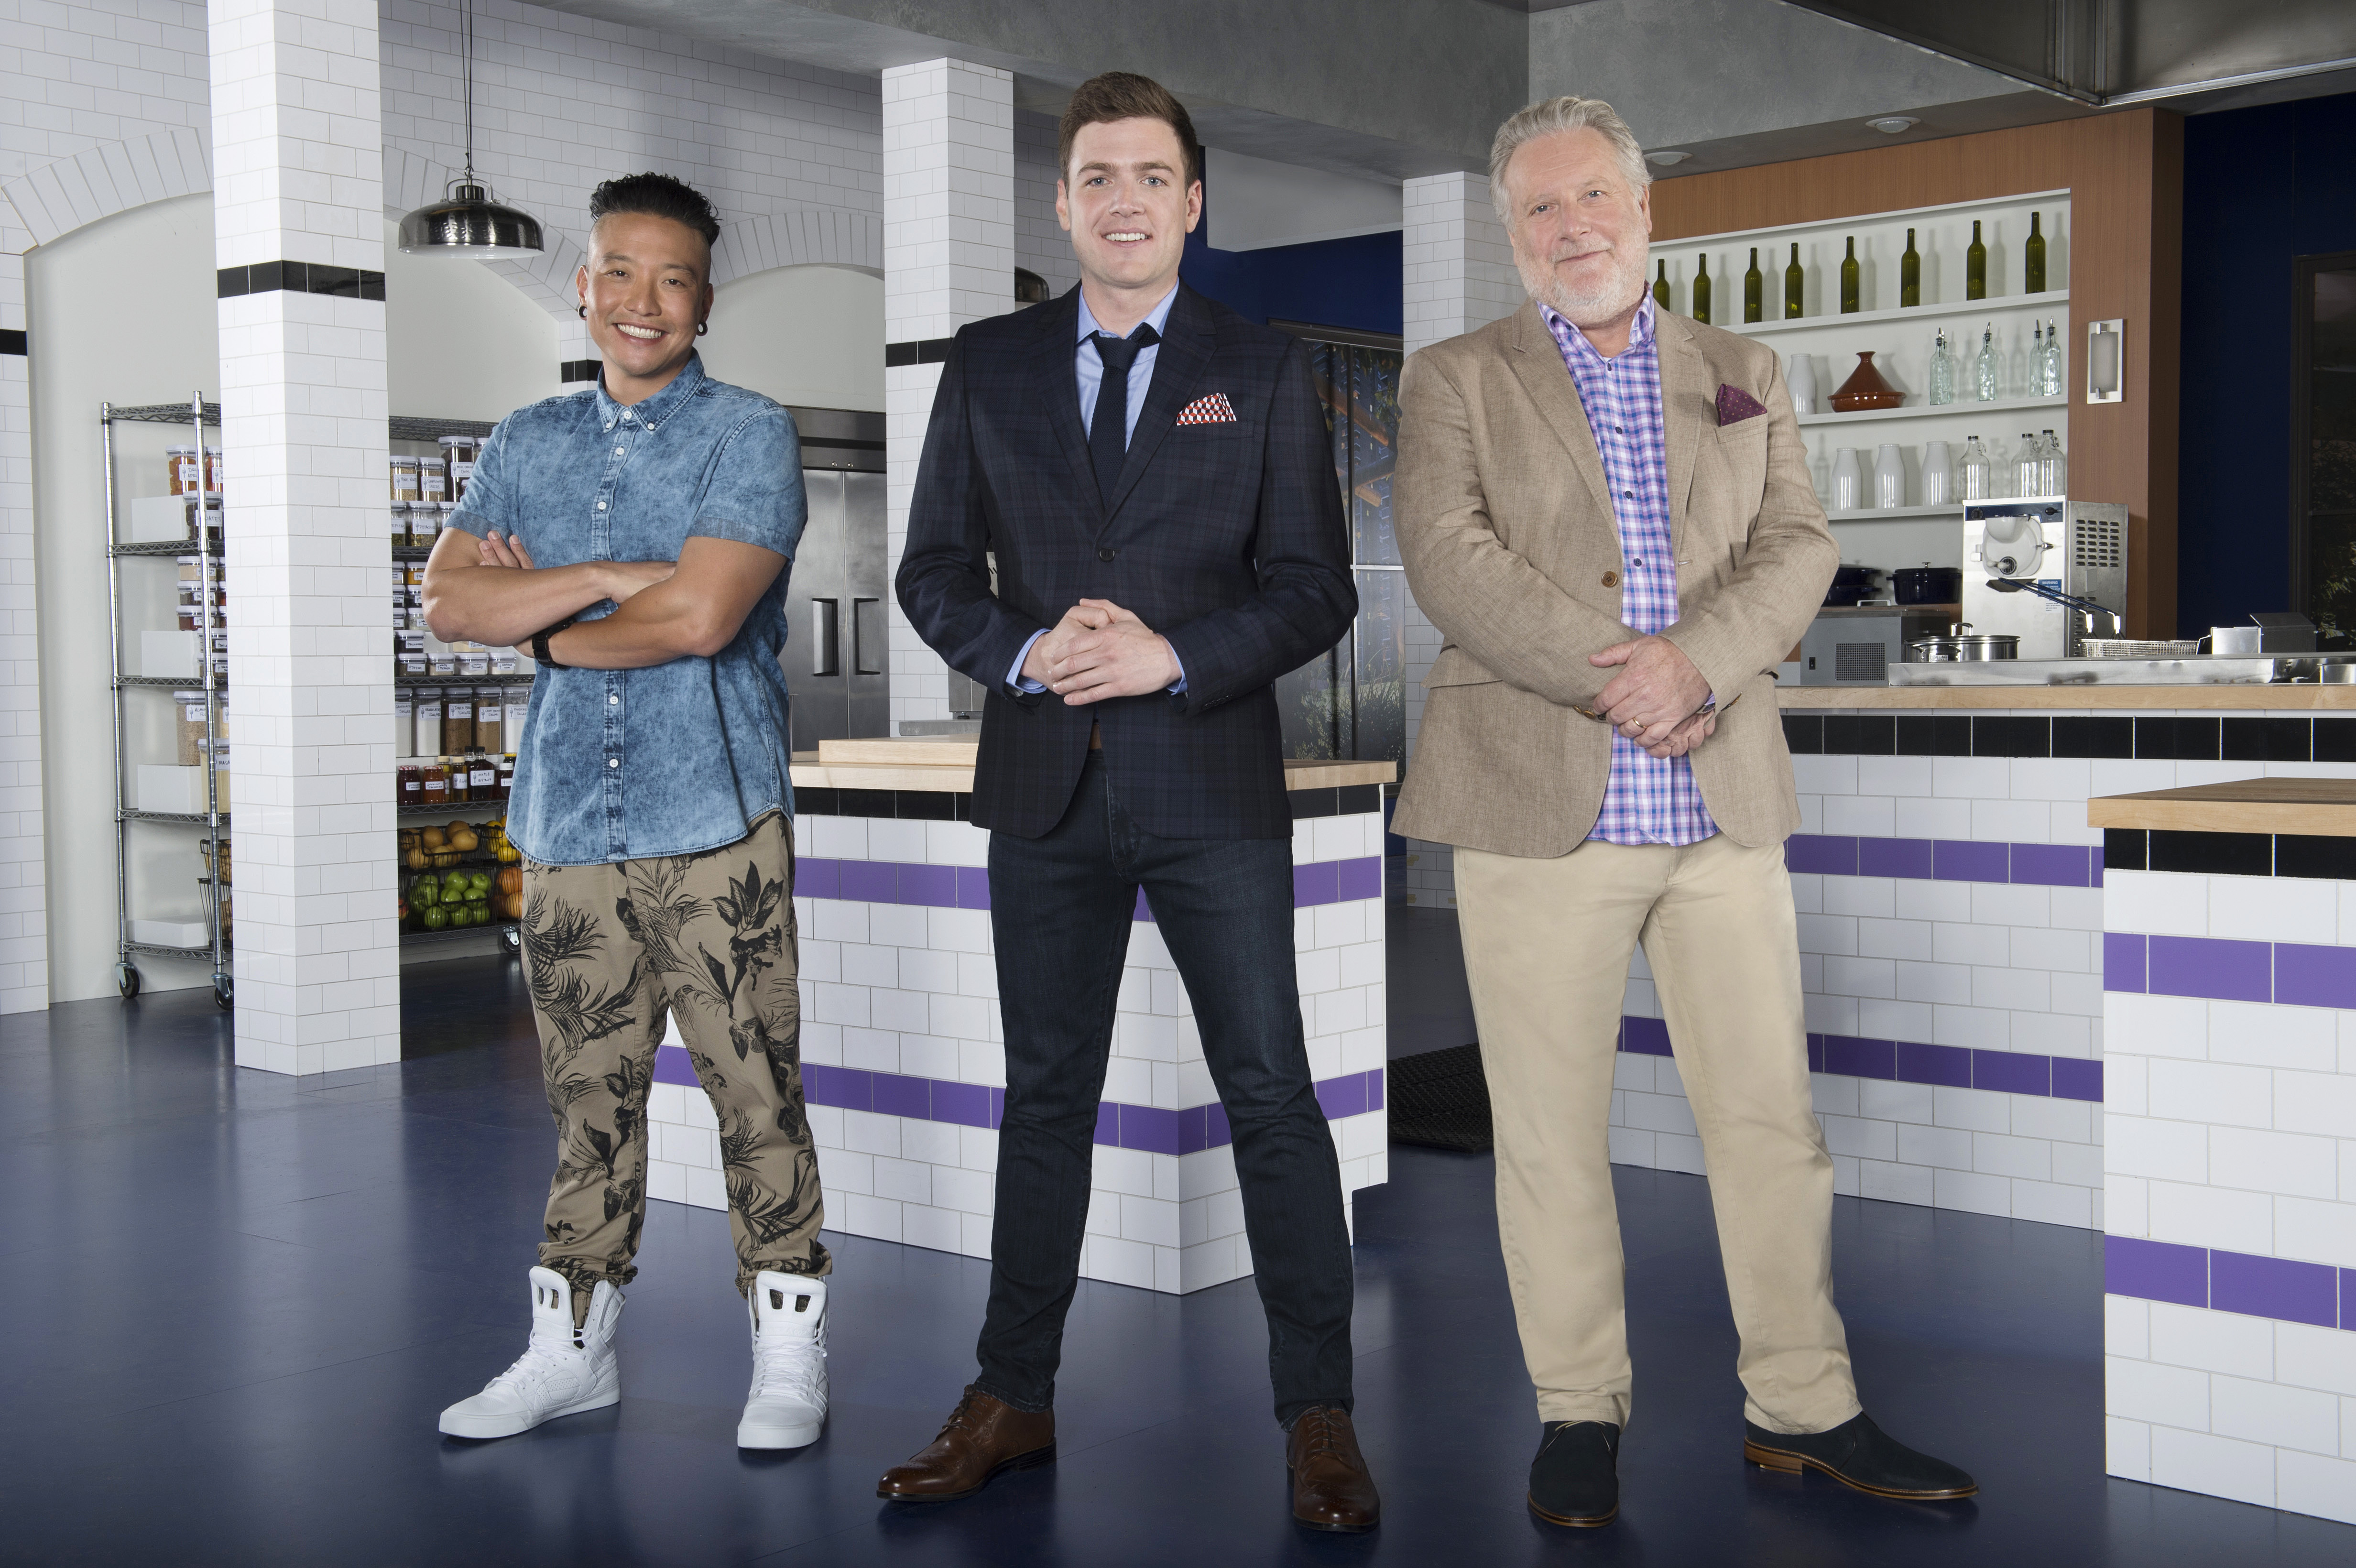 Chris Oh, Max Silvestri, Jonathan Waxman for Bravo's upcoming show, Recipe for Deception